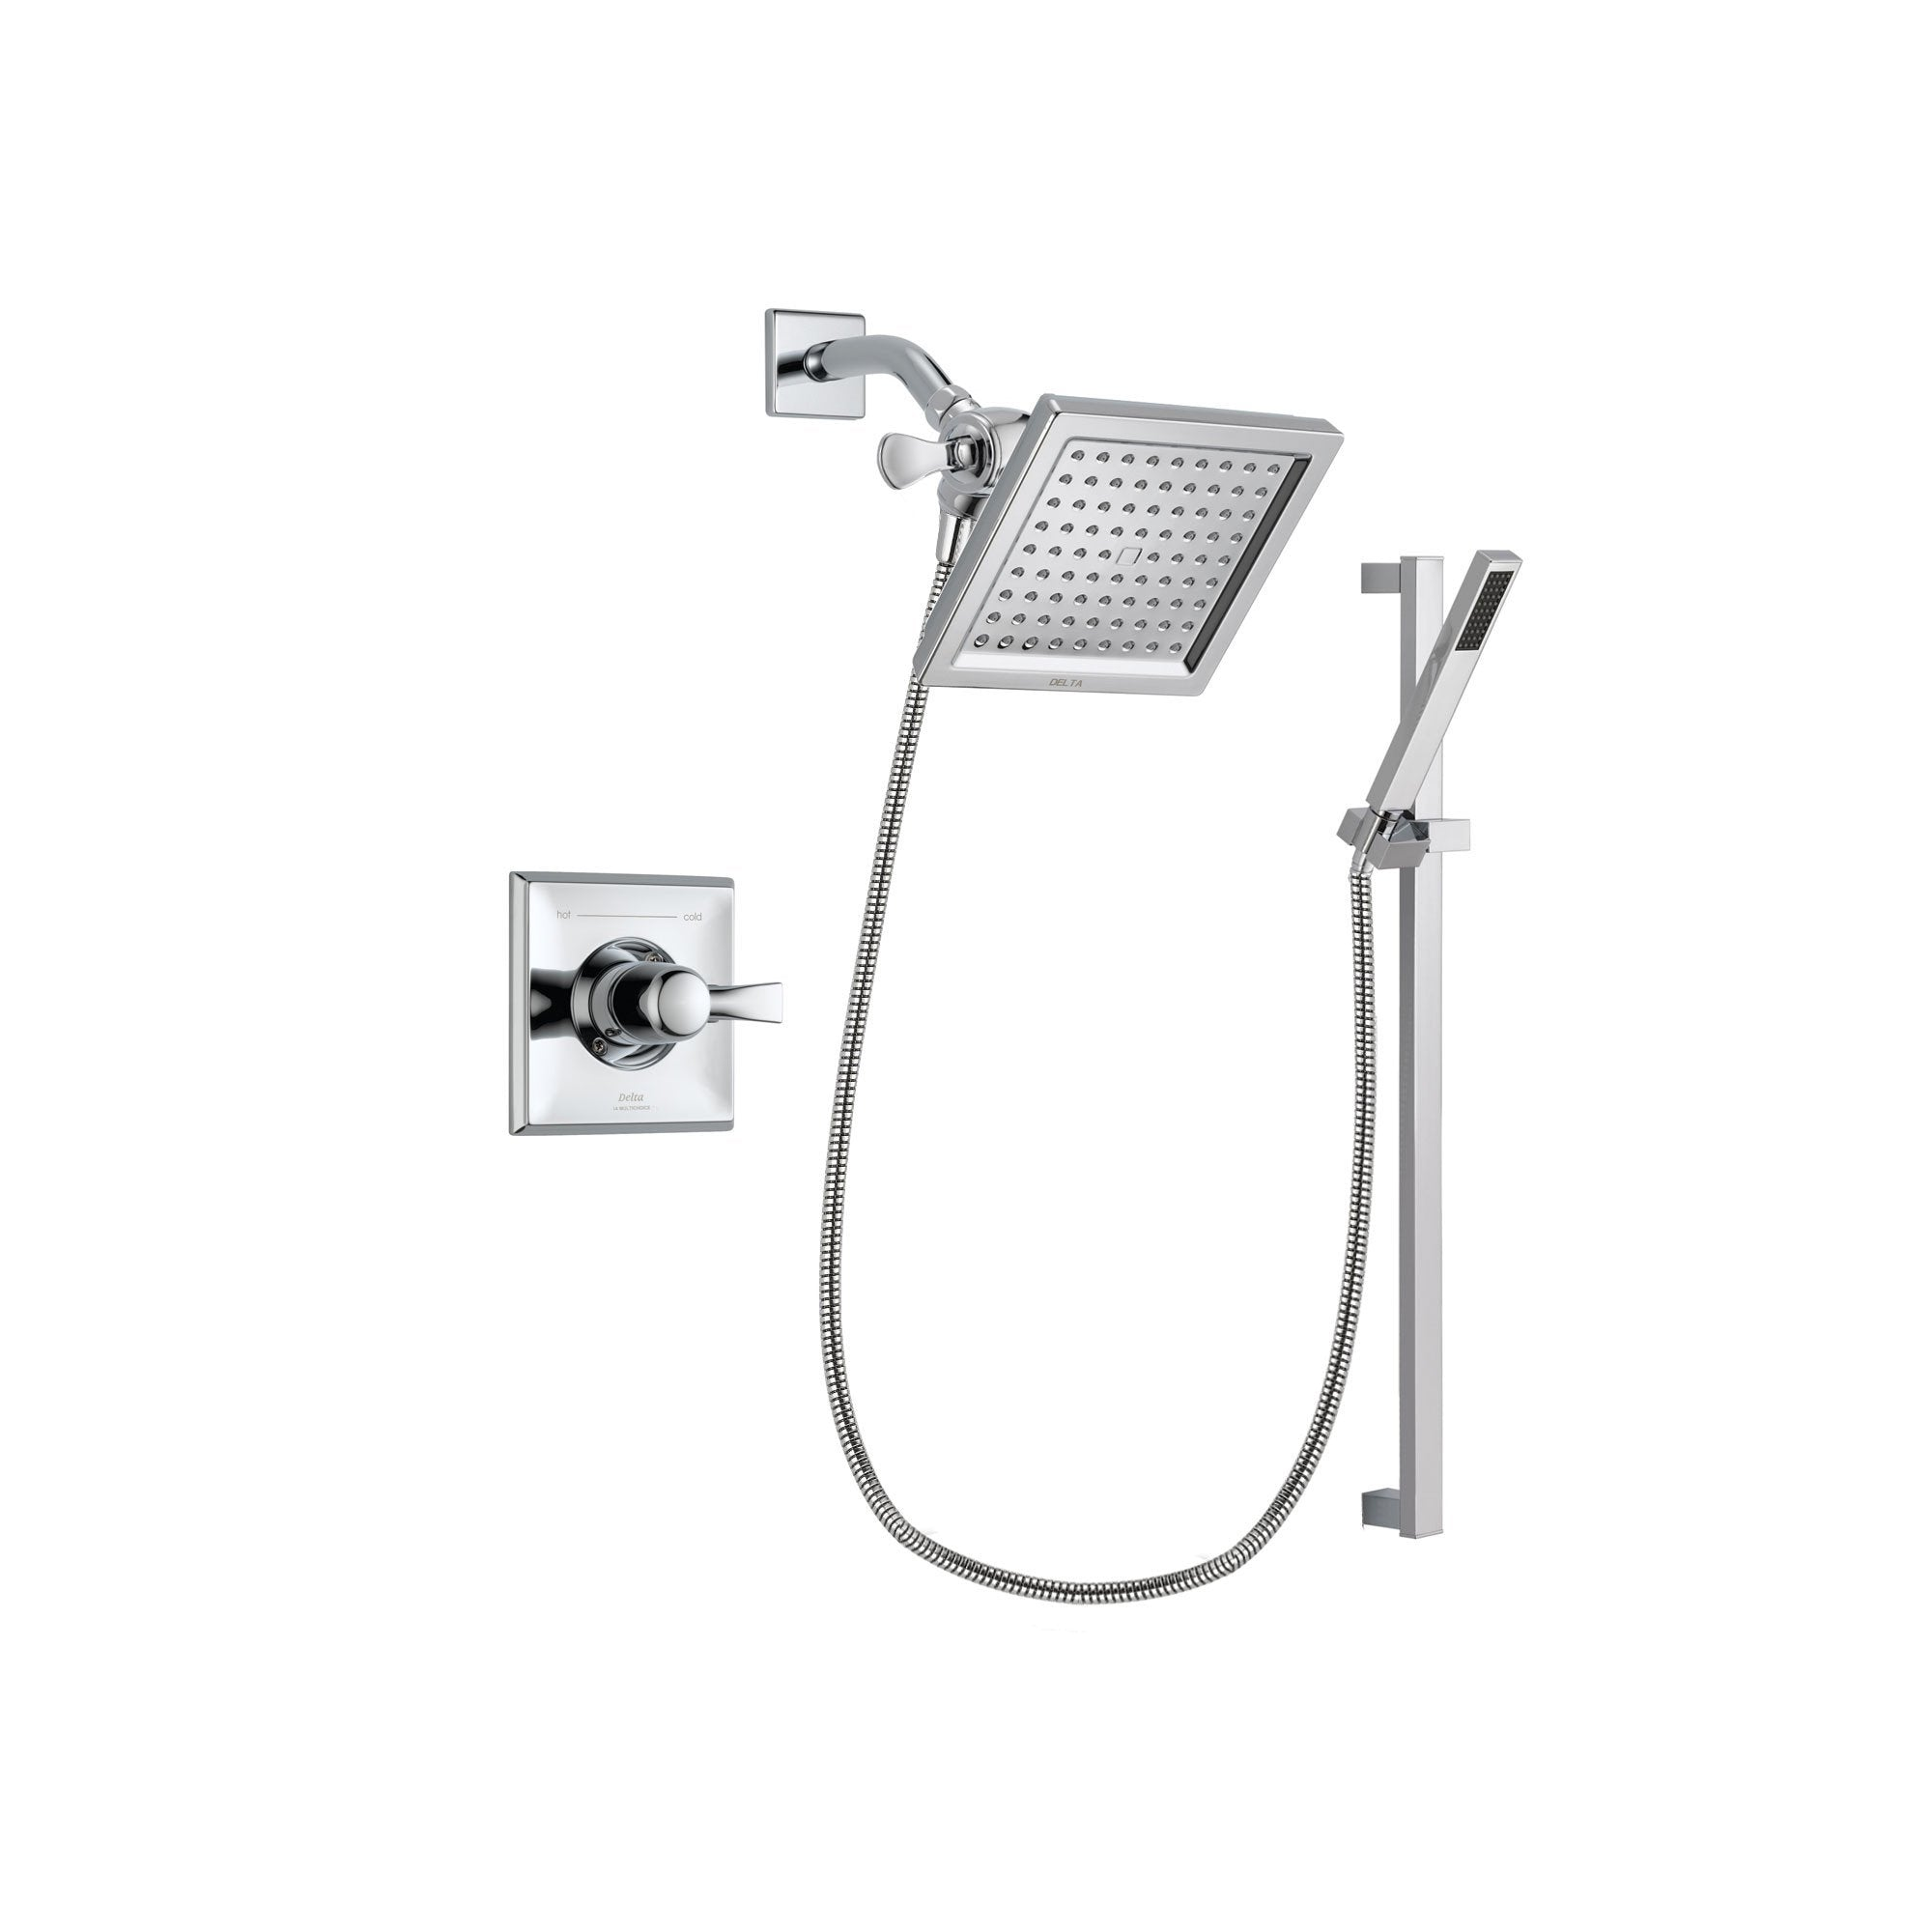 Delta Dryden Chrome Shower Faucet System with Shower Head & Hand Shower DSP0216V